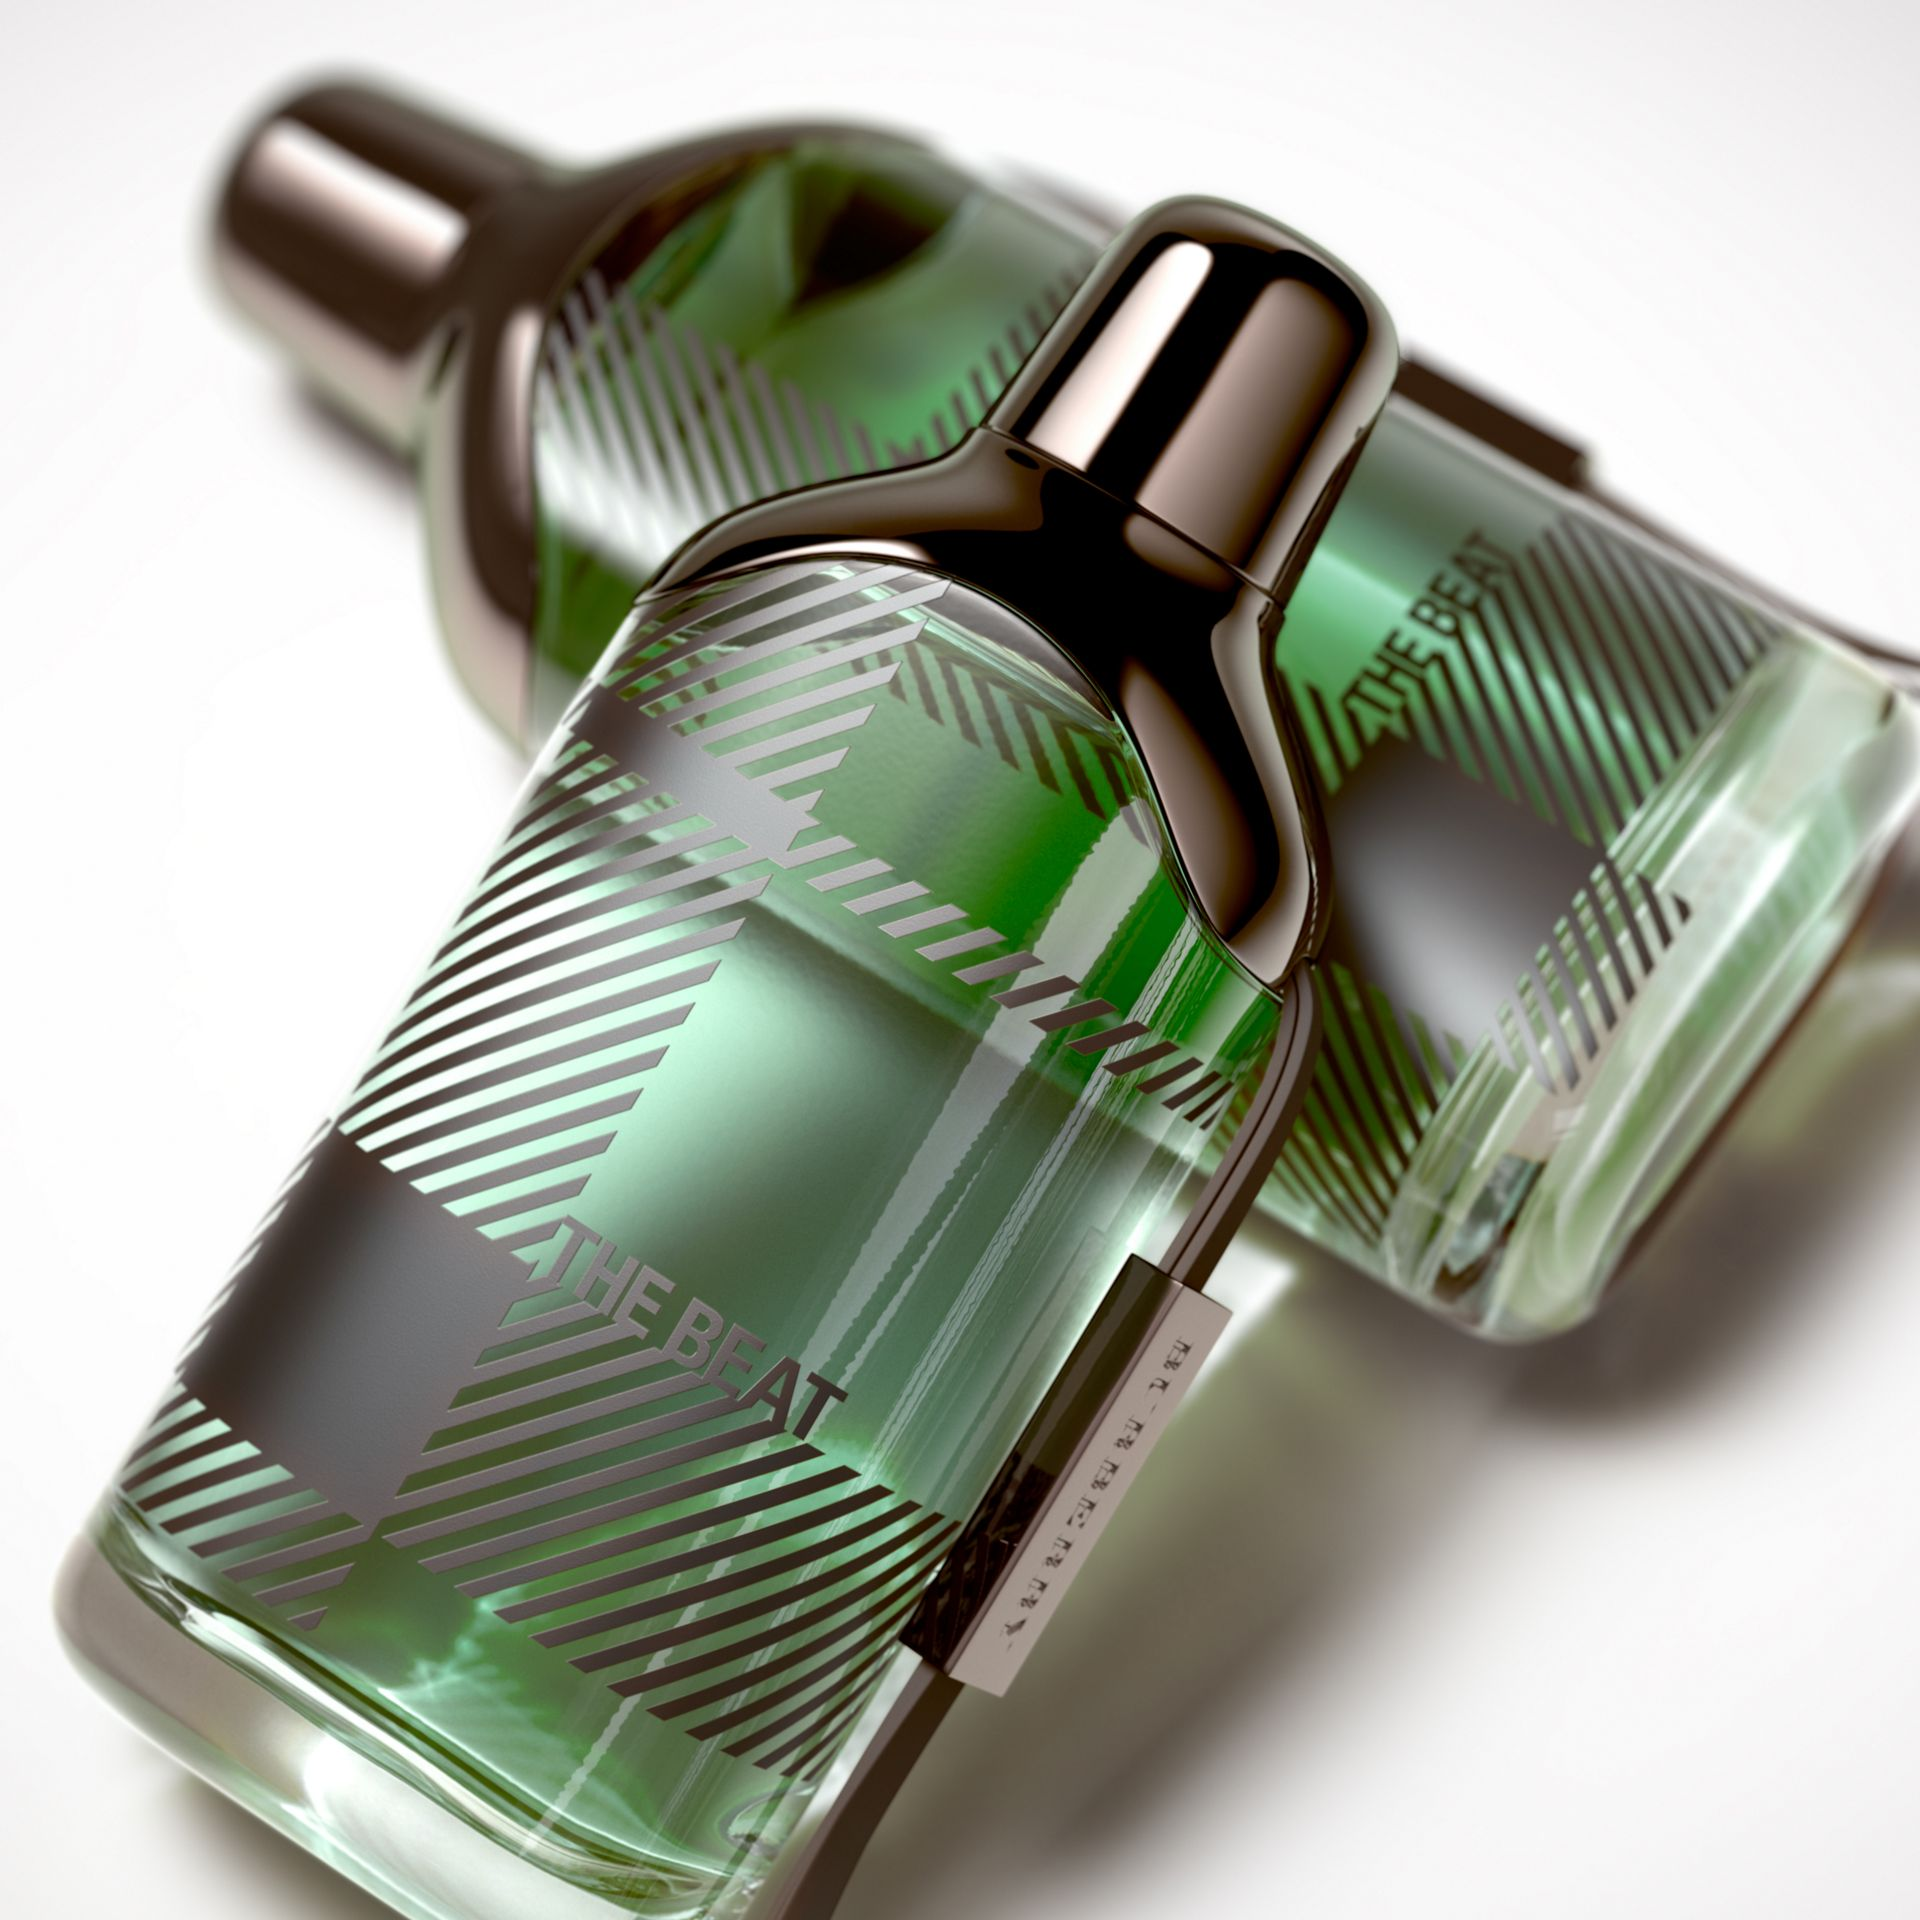 Burberry The Beat Eau de Toilette 50ml - gallery image 2